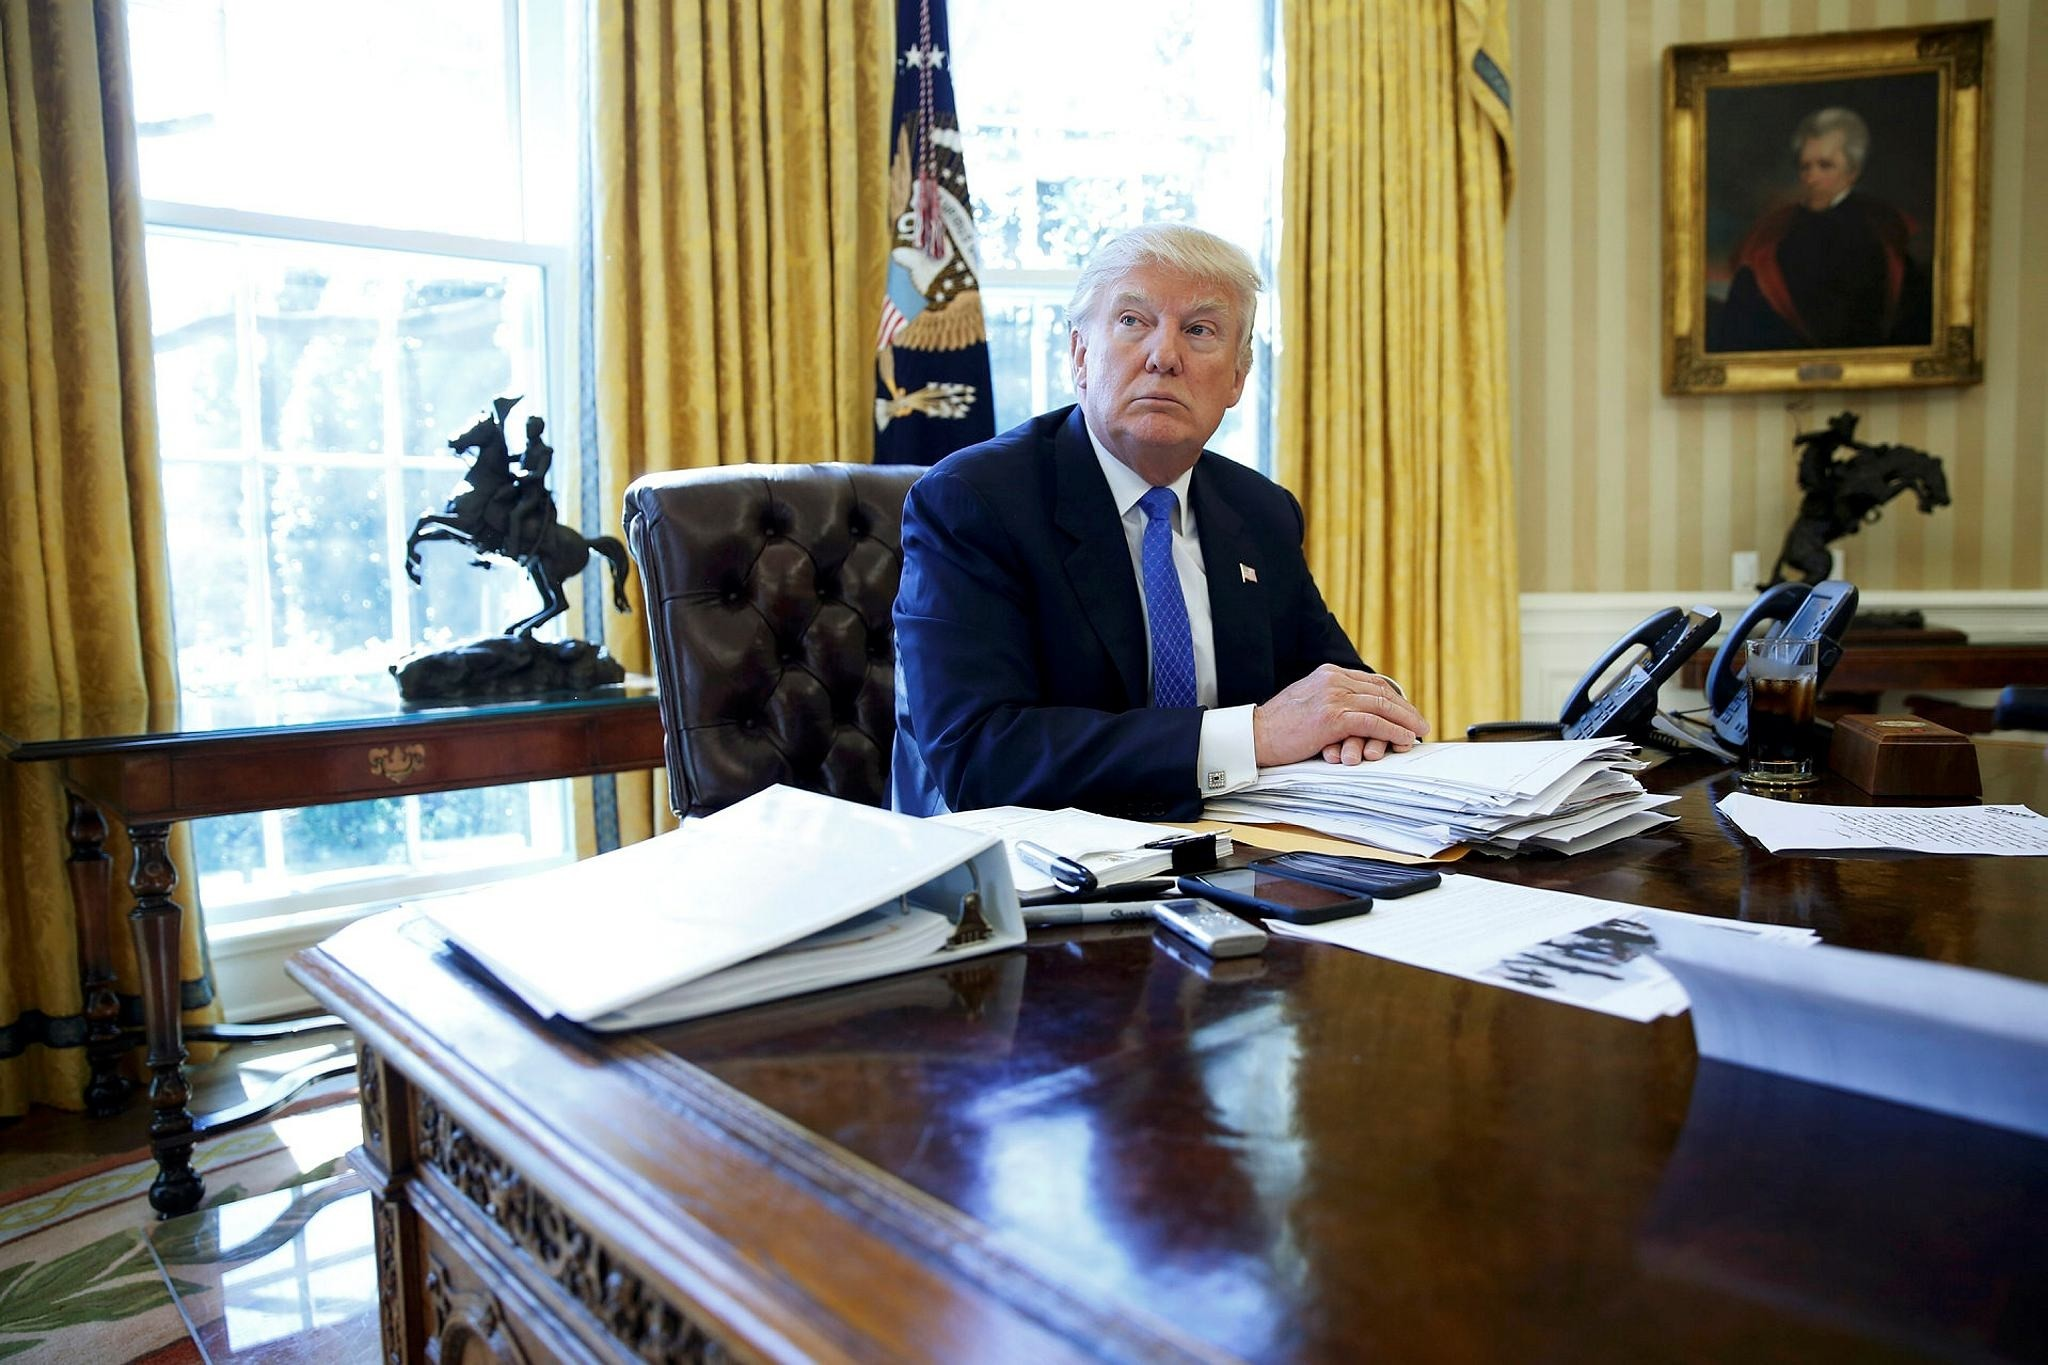 U.S. President Donald Trump is interviewed by Reuters in the Oval Office at the White House in Washington, U.S., Feb. 23.